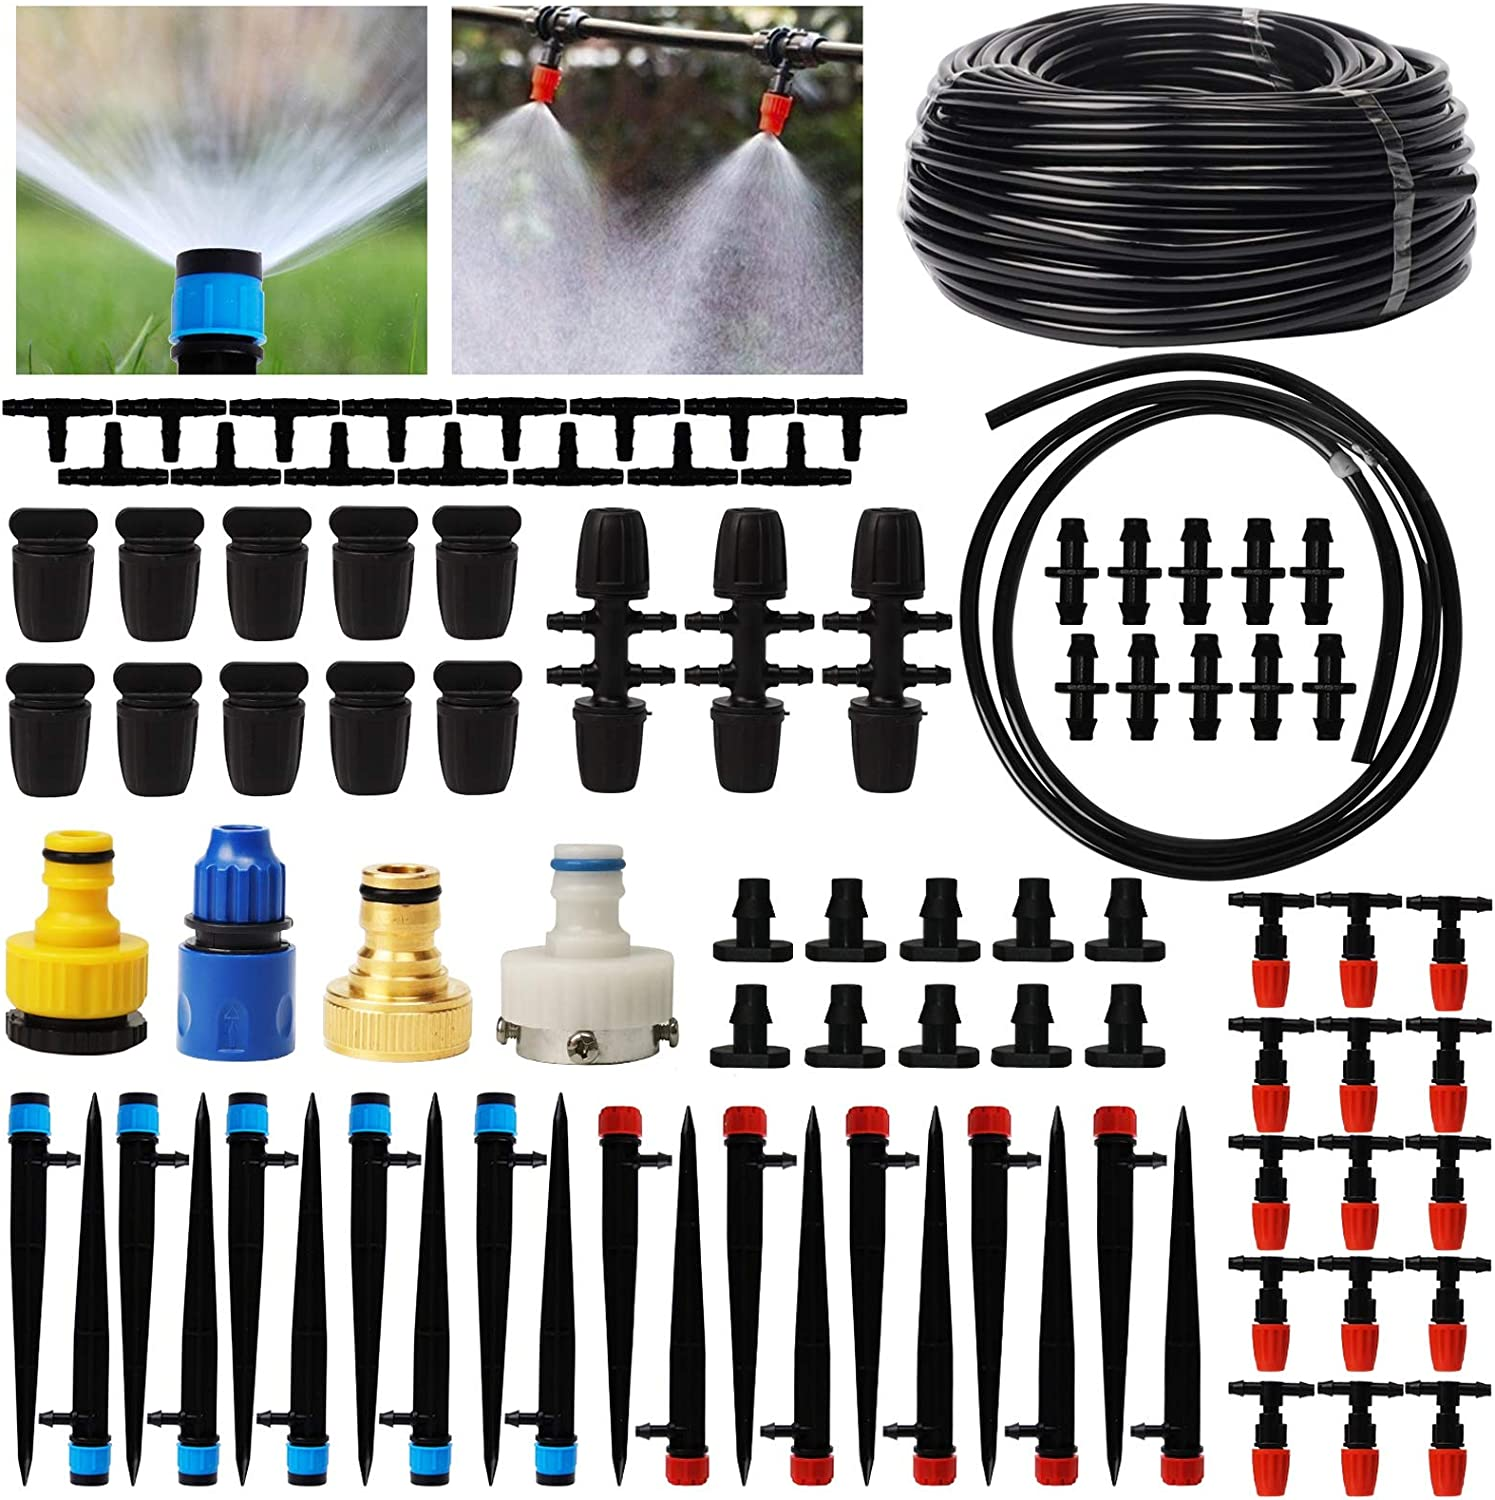 Lulu Home Irrigation System, 89 Pcs 138 FT Garden Irrigation System with Adjustable Nozzle Sprinkler Sprayer & Dripper Automatic Patio Plant Watering Kit Misting Cooling System for Greenhouse